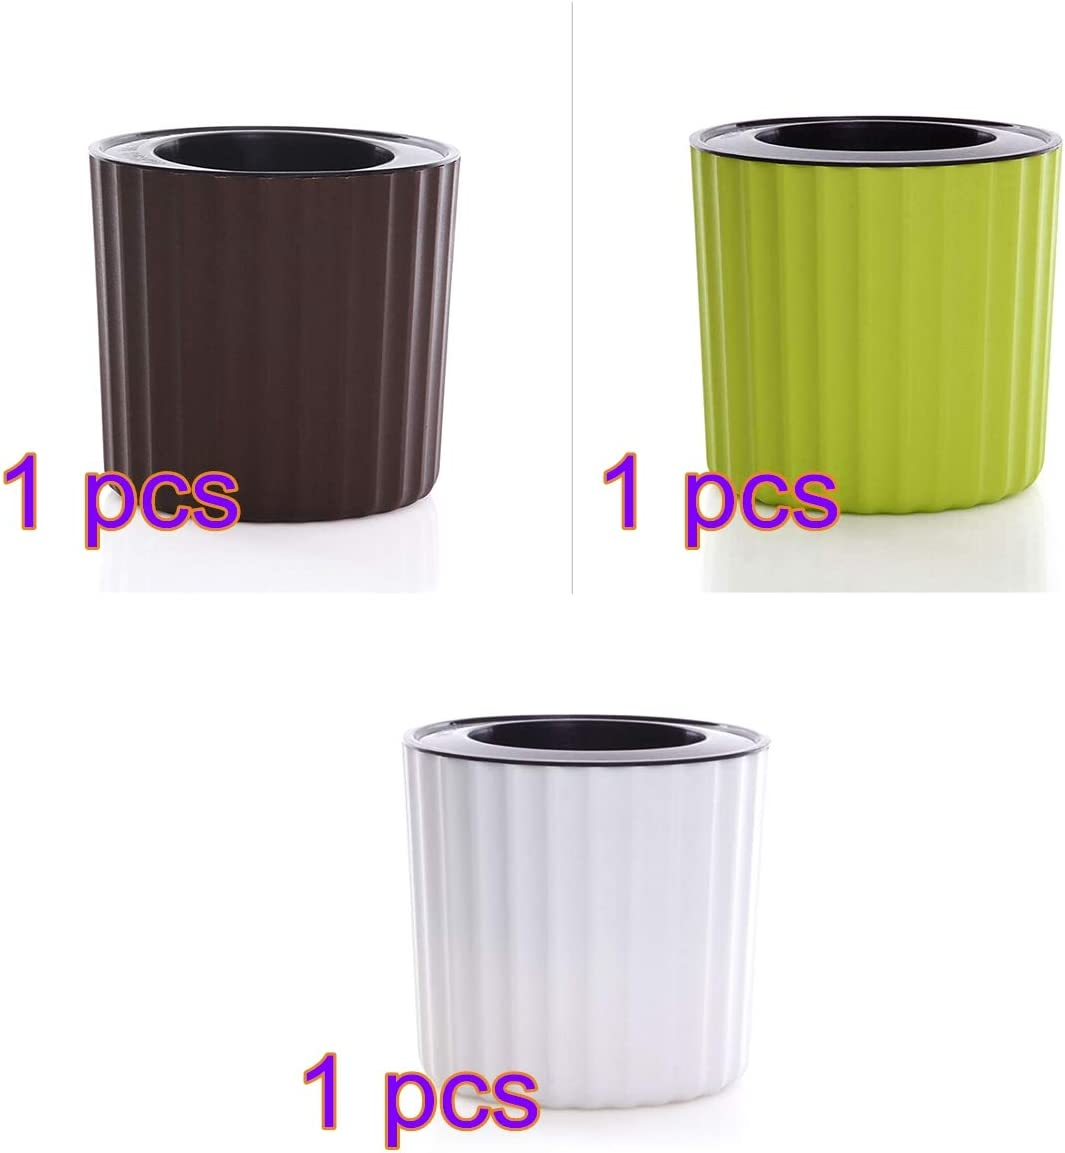 Alapaste 3 Pack Self Watering Planter Modern Decorative Flower Pot for All House Plants Flowers,Herbs,African Violets,Succulents